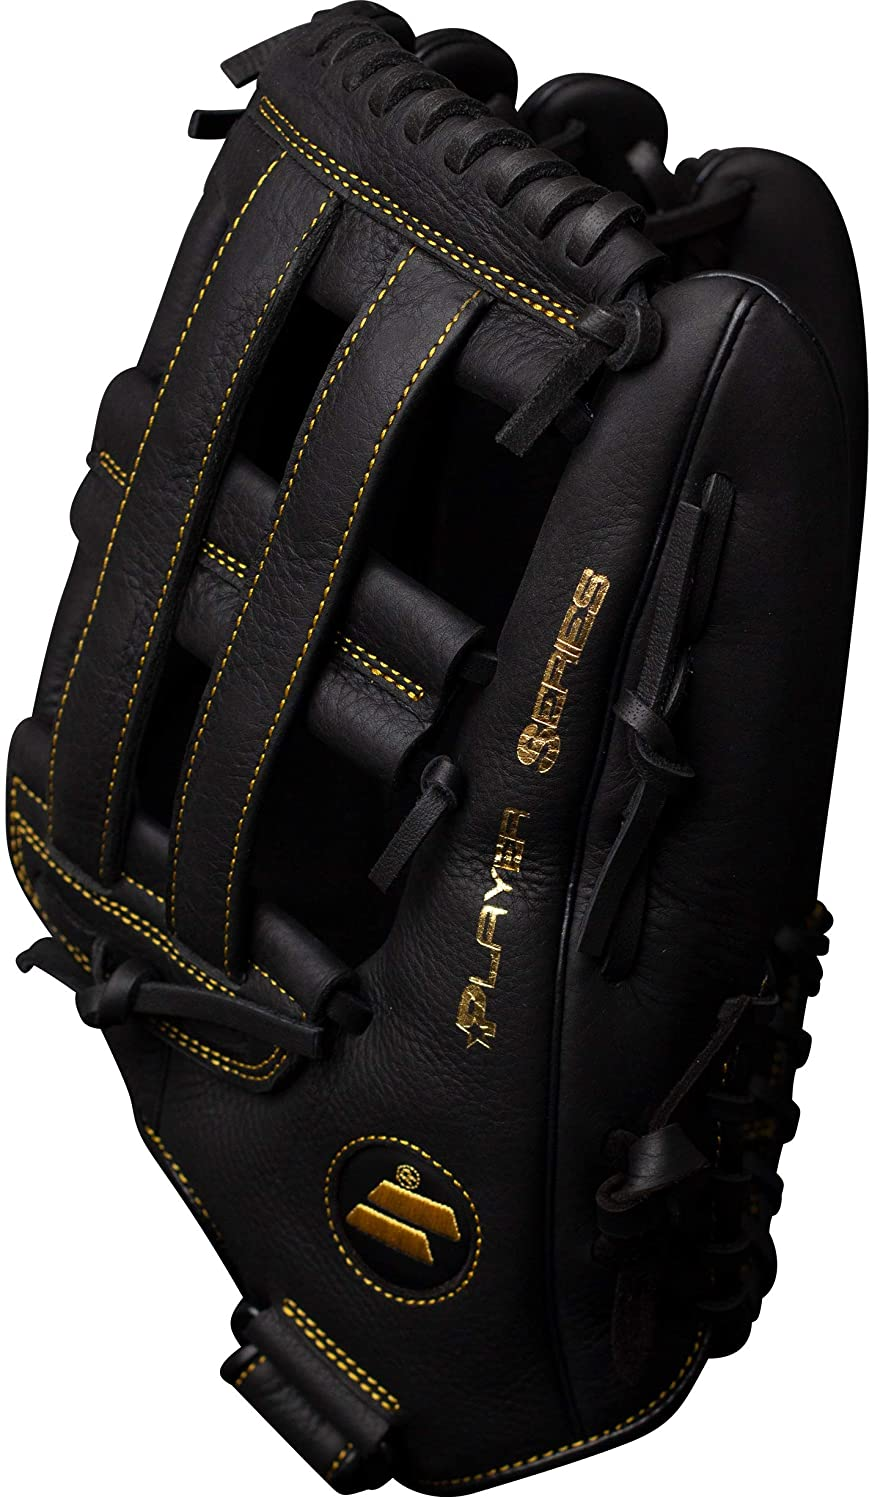 worth-player-series-14-inch-h-web-slowpitch-softball-glove-right-hand-throw WPL140-PH-RightHandThrow Worth 658925043284 Player series from Worth is a Slow Pitch softball glove featuring